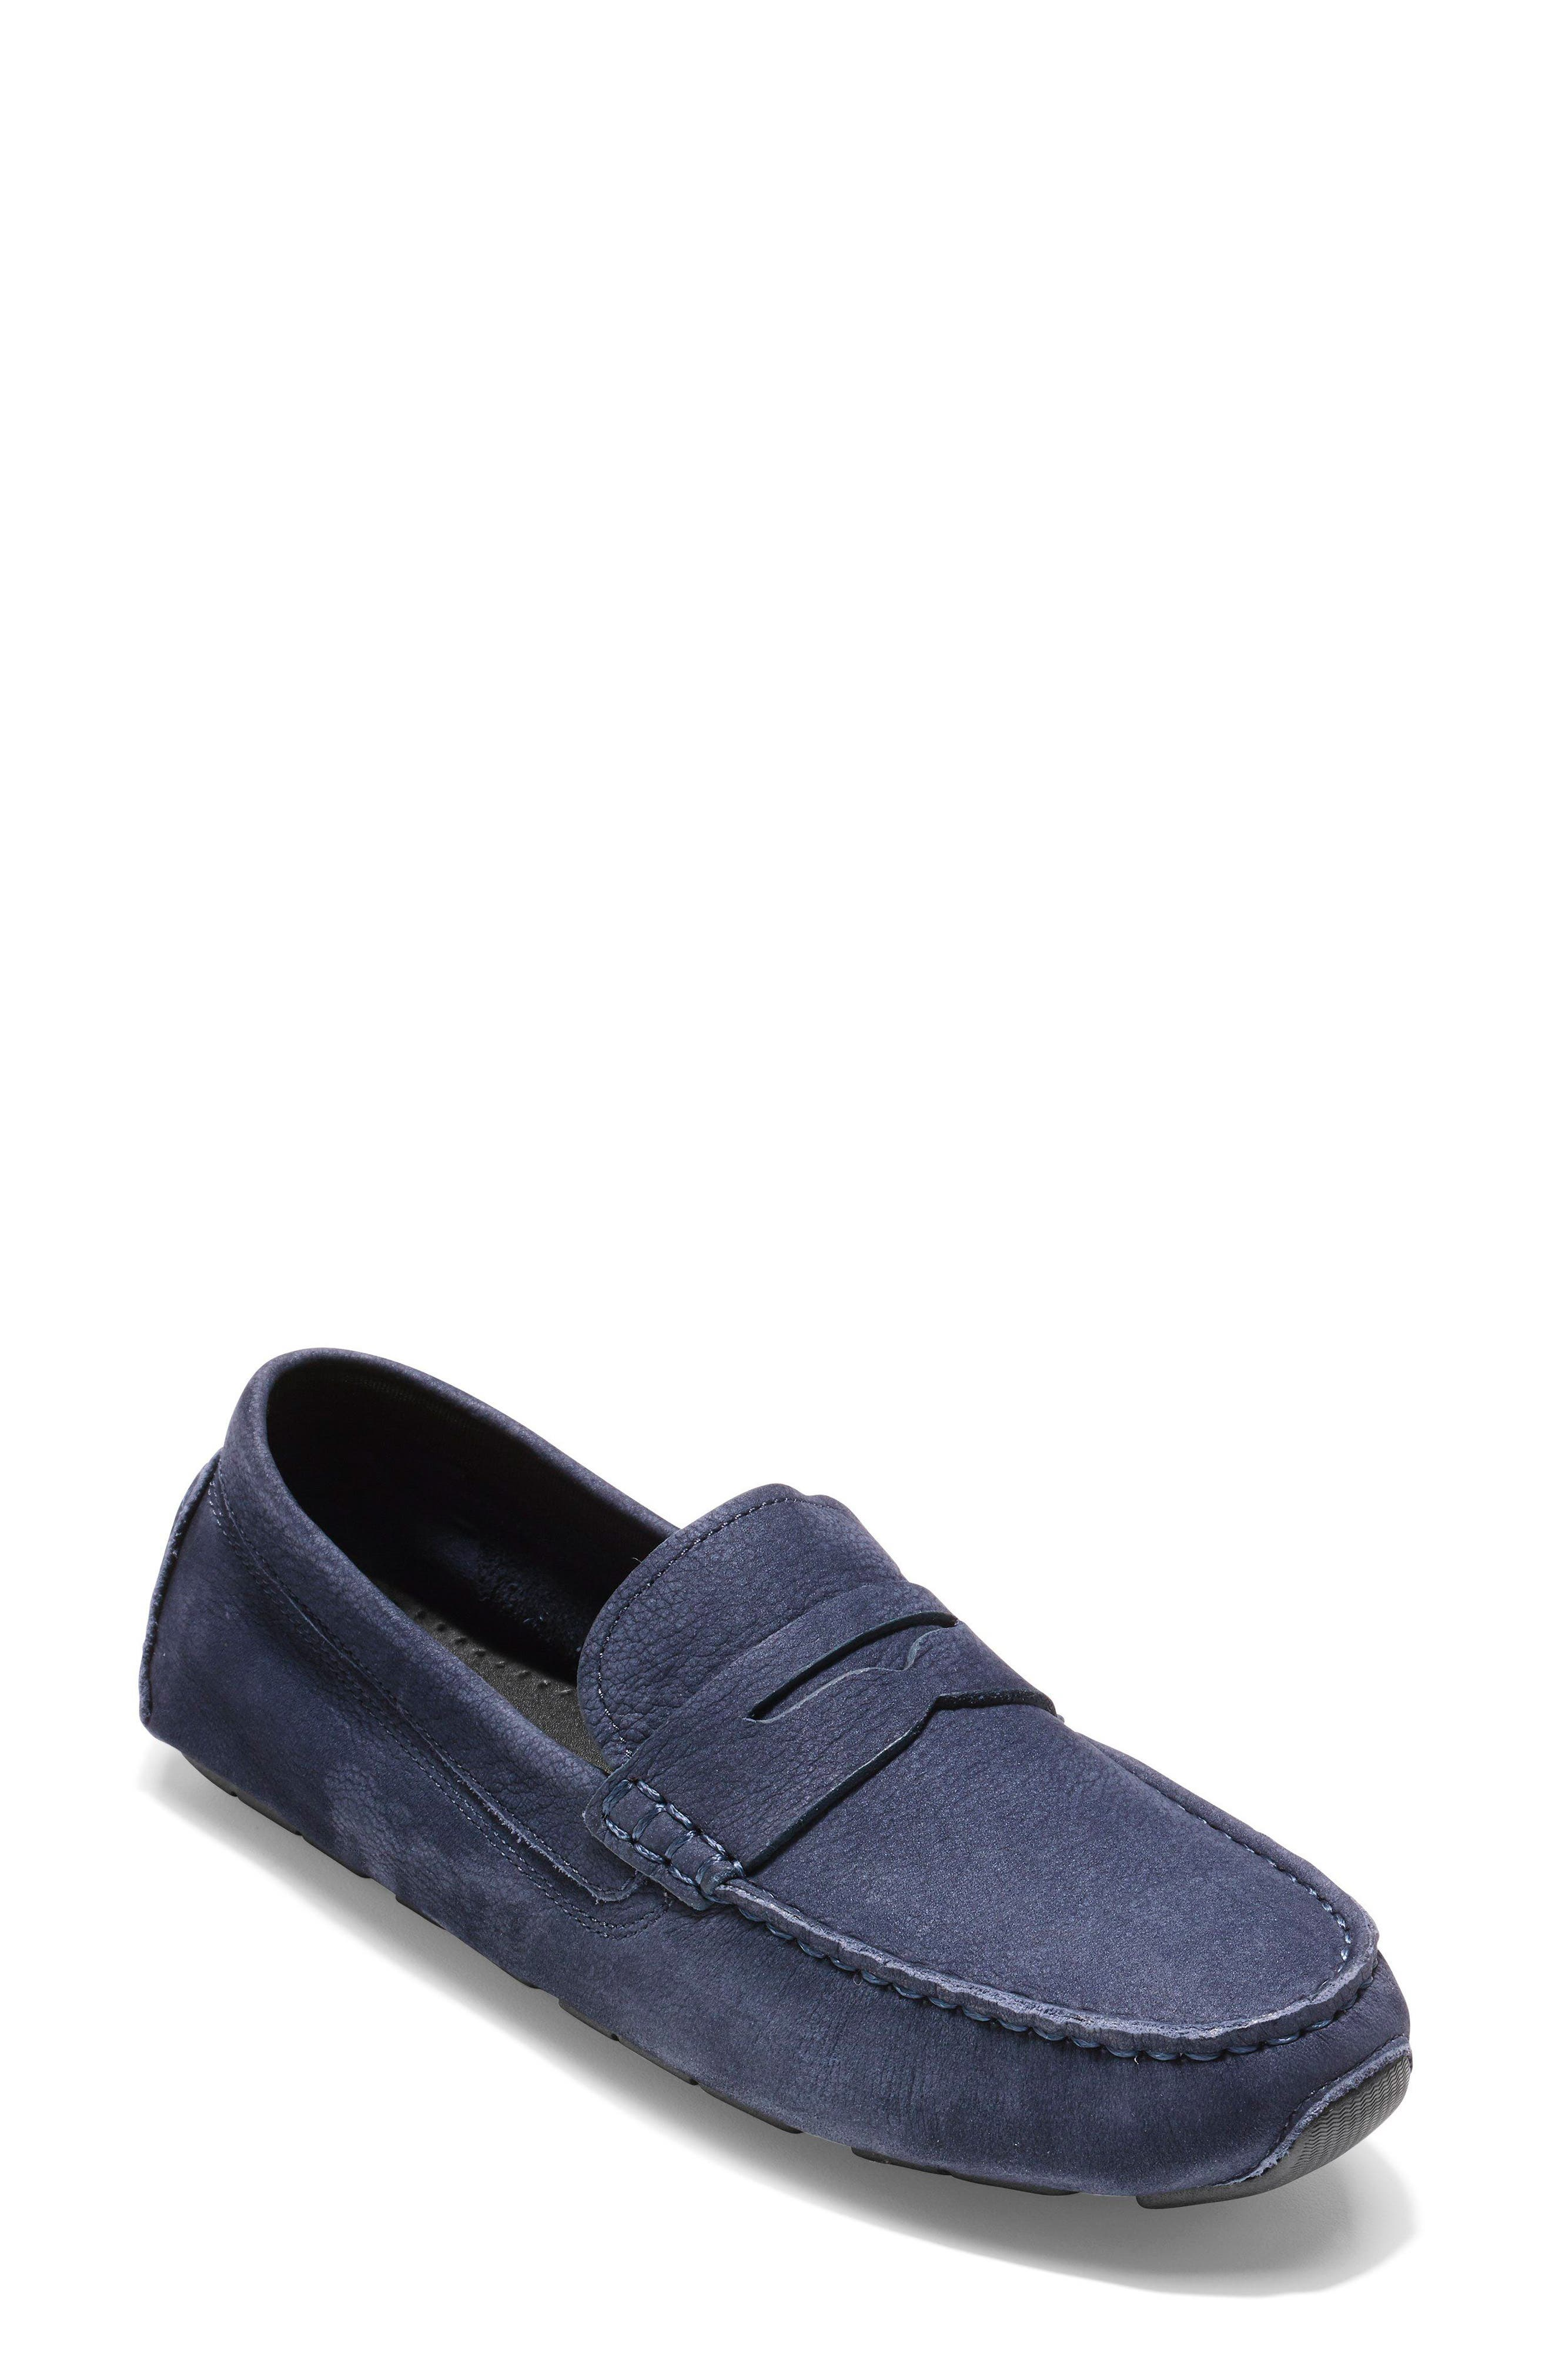 Main Image - Cole Haan Rodeo Penny Driving Loafer (Women)